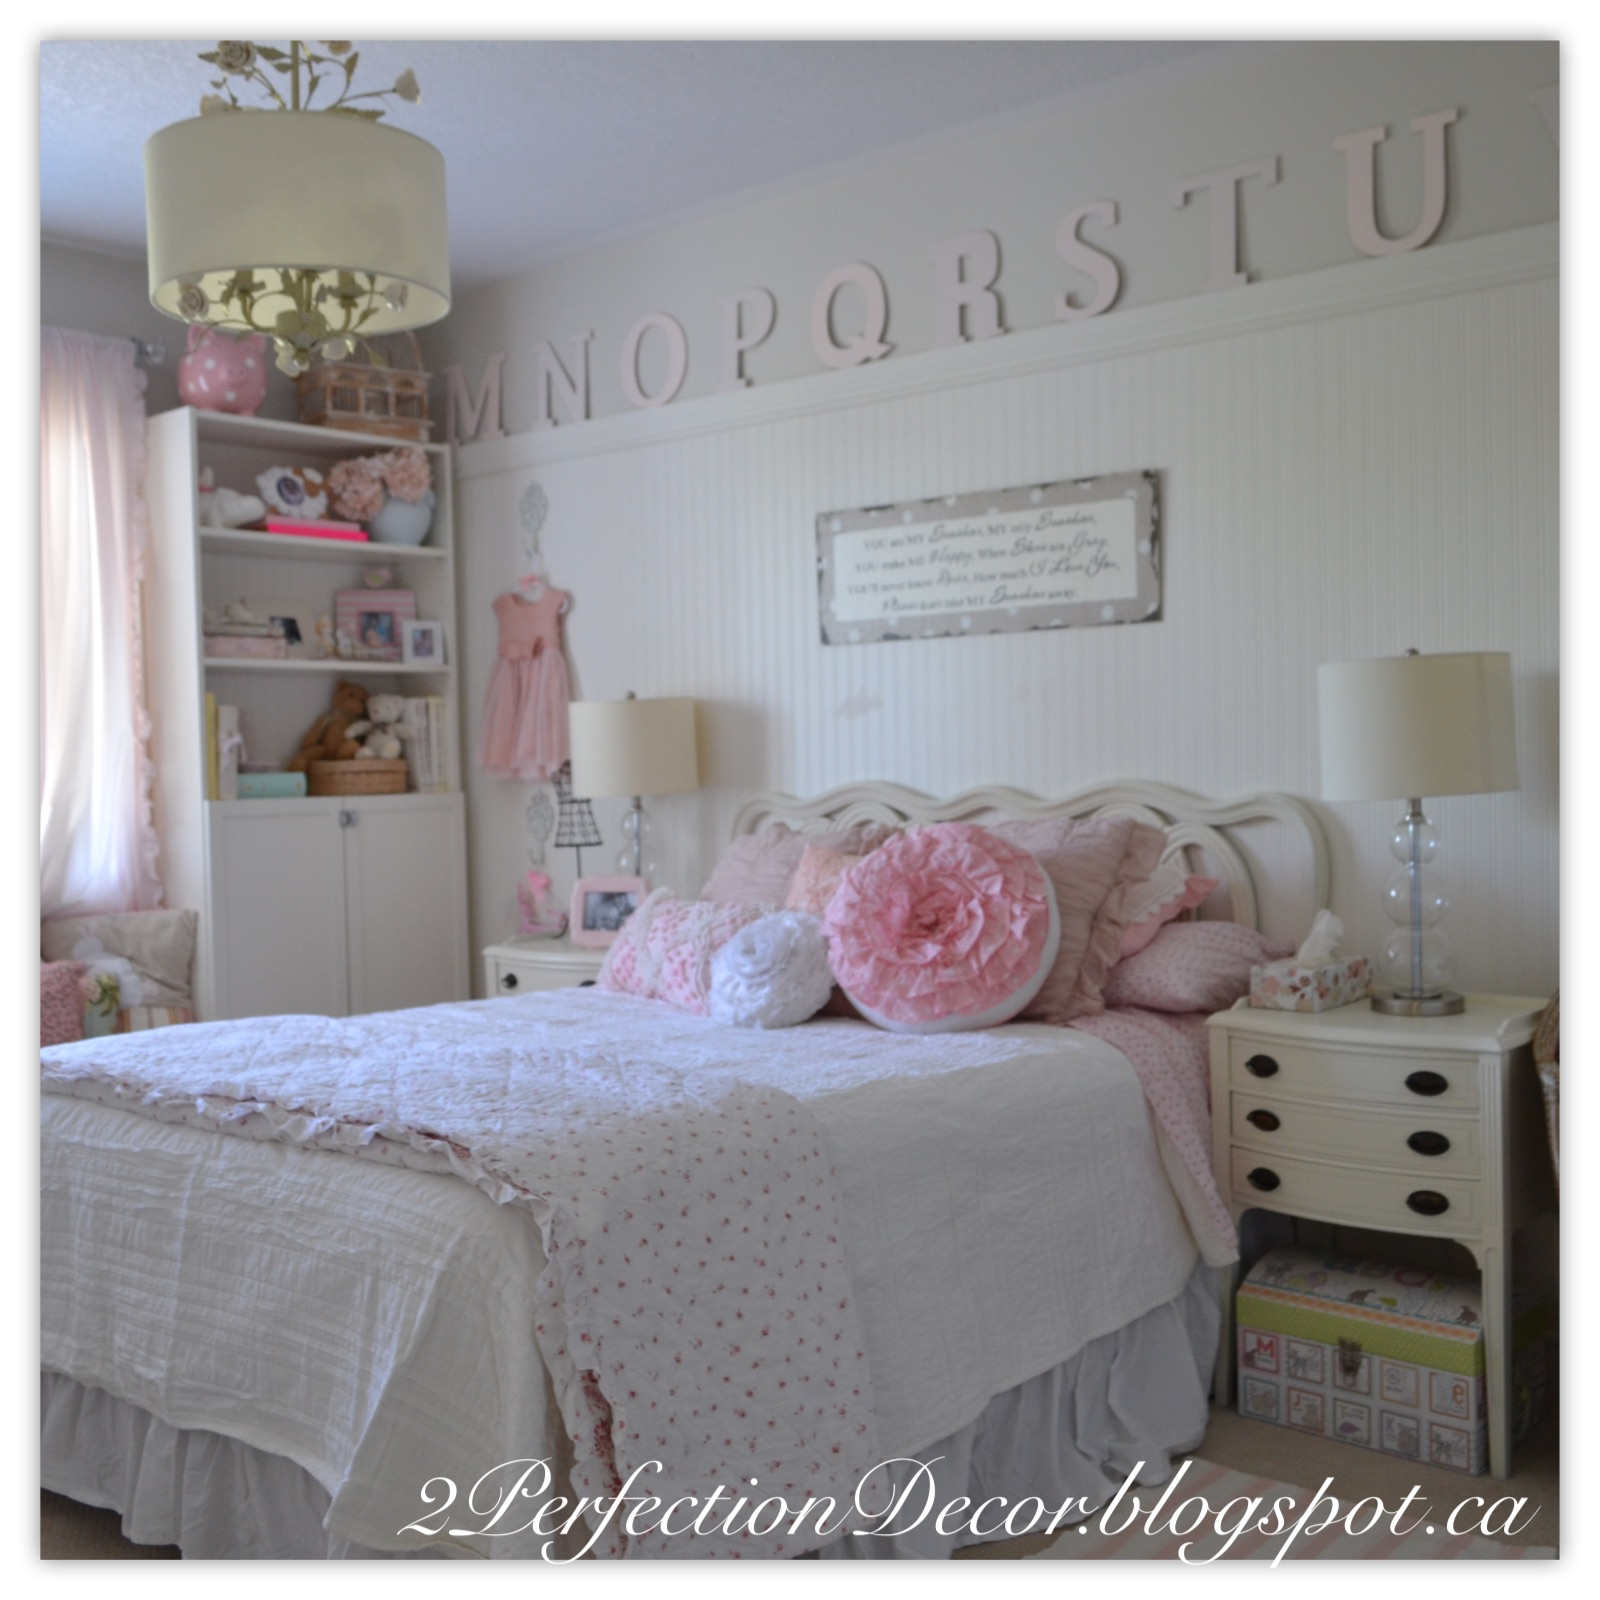 Perfect The bedding is a eclectic mix The coverlet and sheets are all part of the Shabby chic collection at Target I love to mix and match and here was no